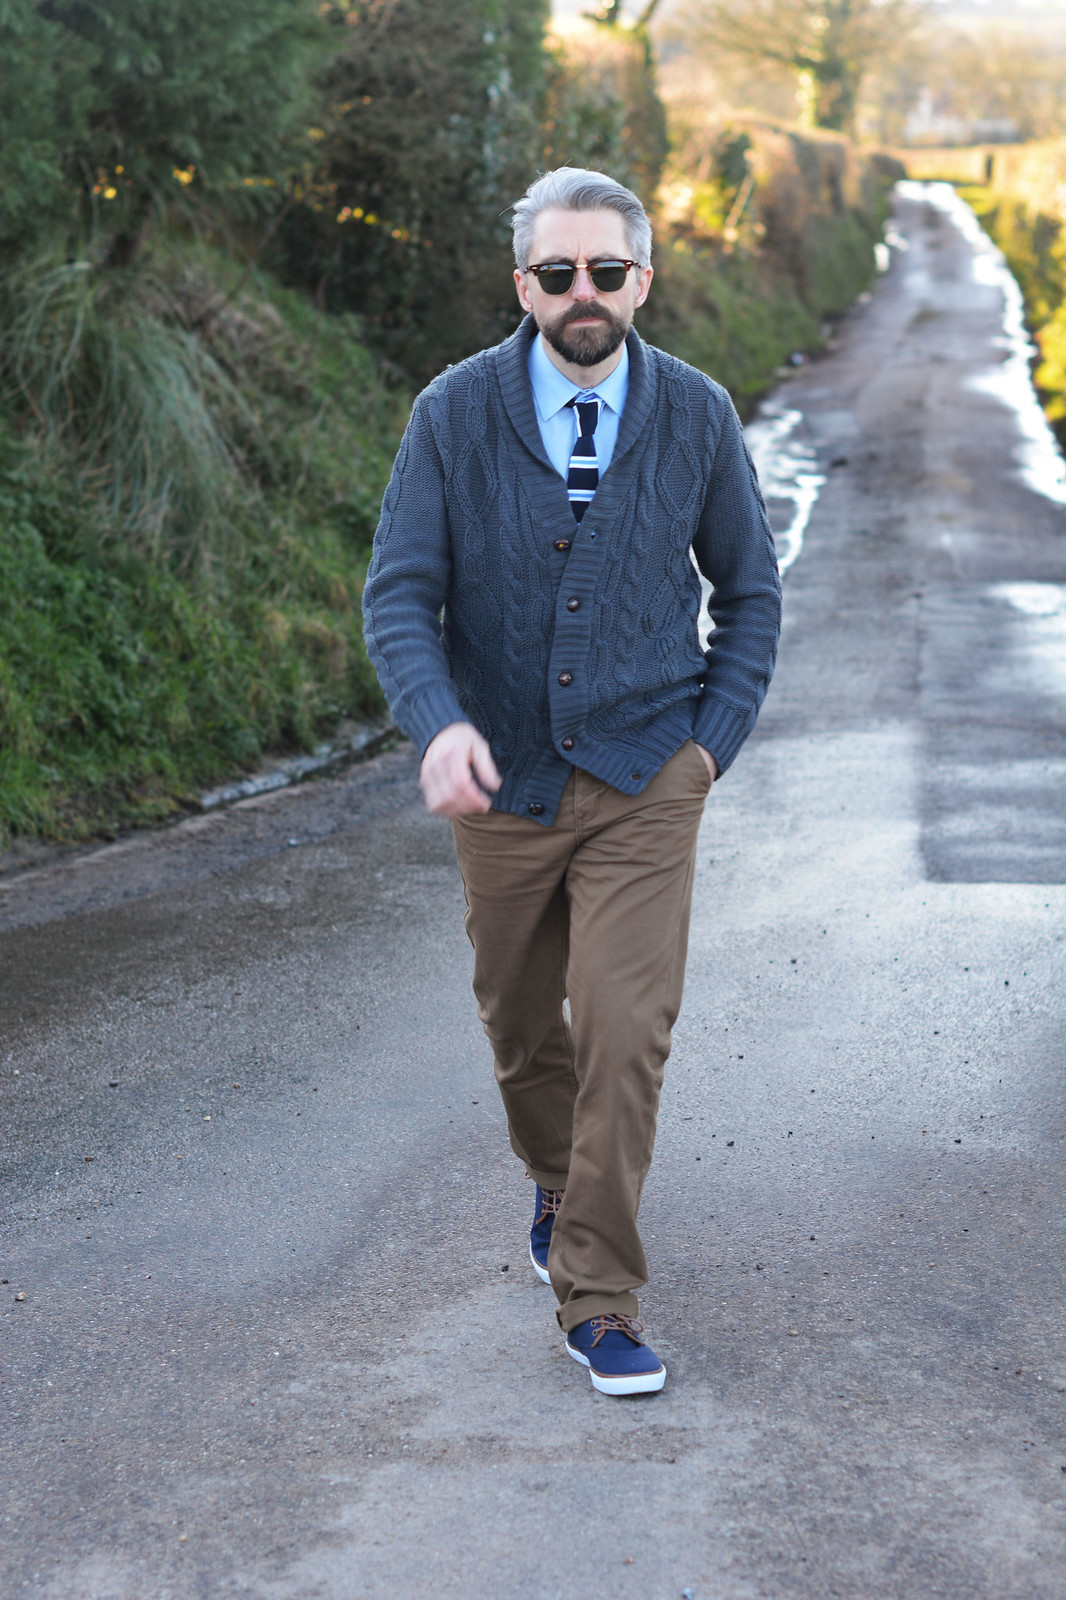 Smart casual menswear: Cable knit cardigan \ shirt and striped tie \ camel chinos \ canvas lace-up shoes \ RayBan Clubmasters | Silver Londoner, over 40 menswear